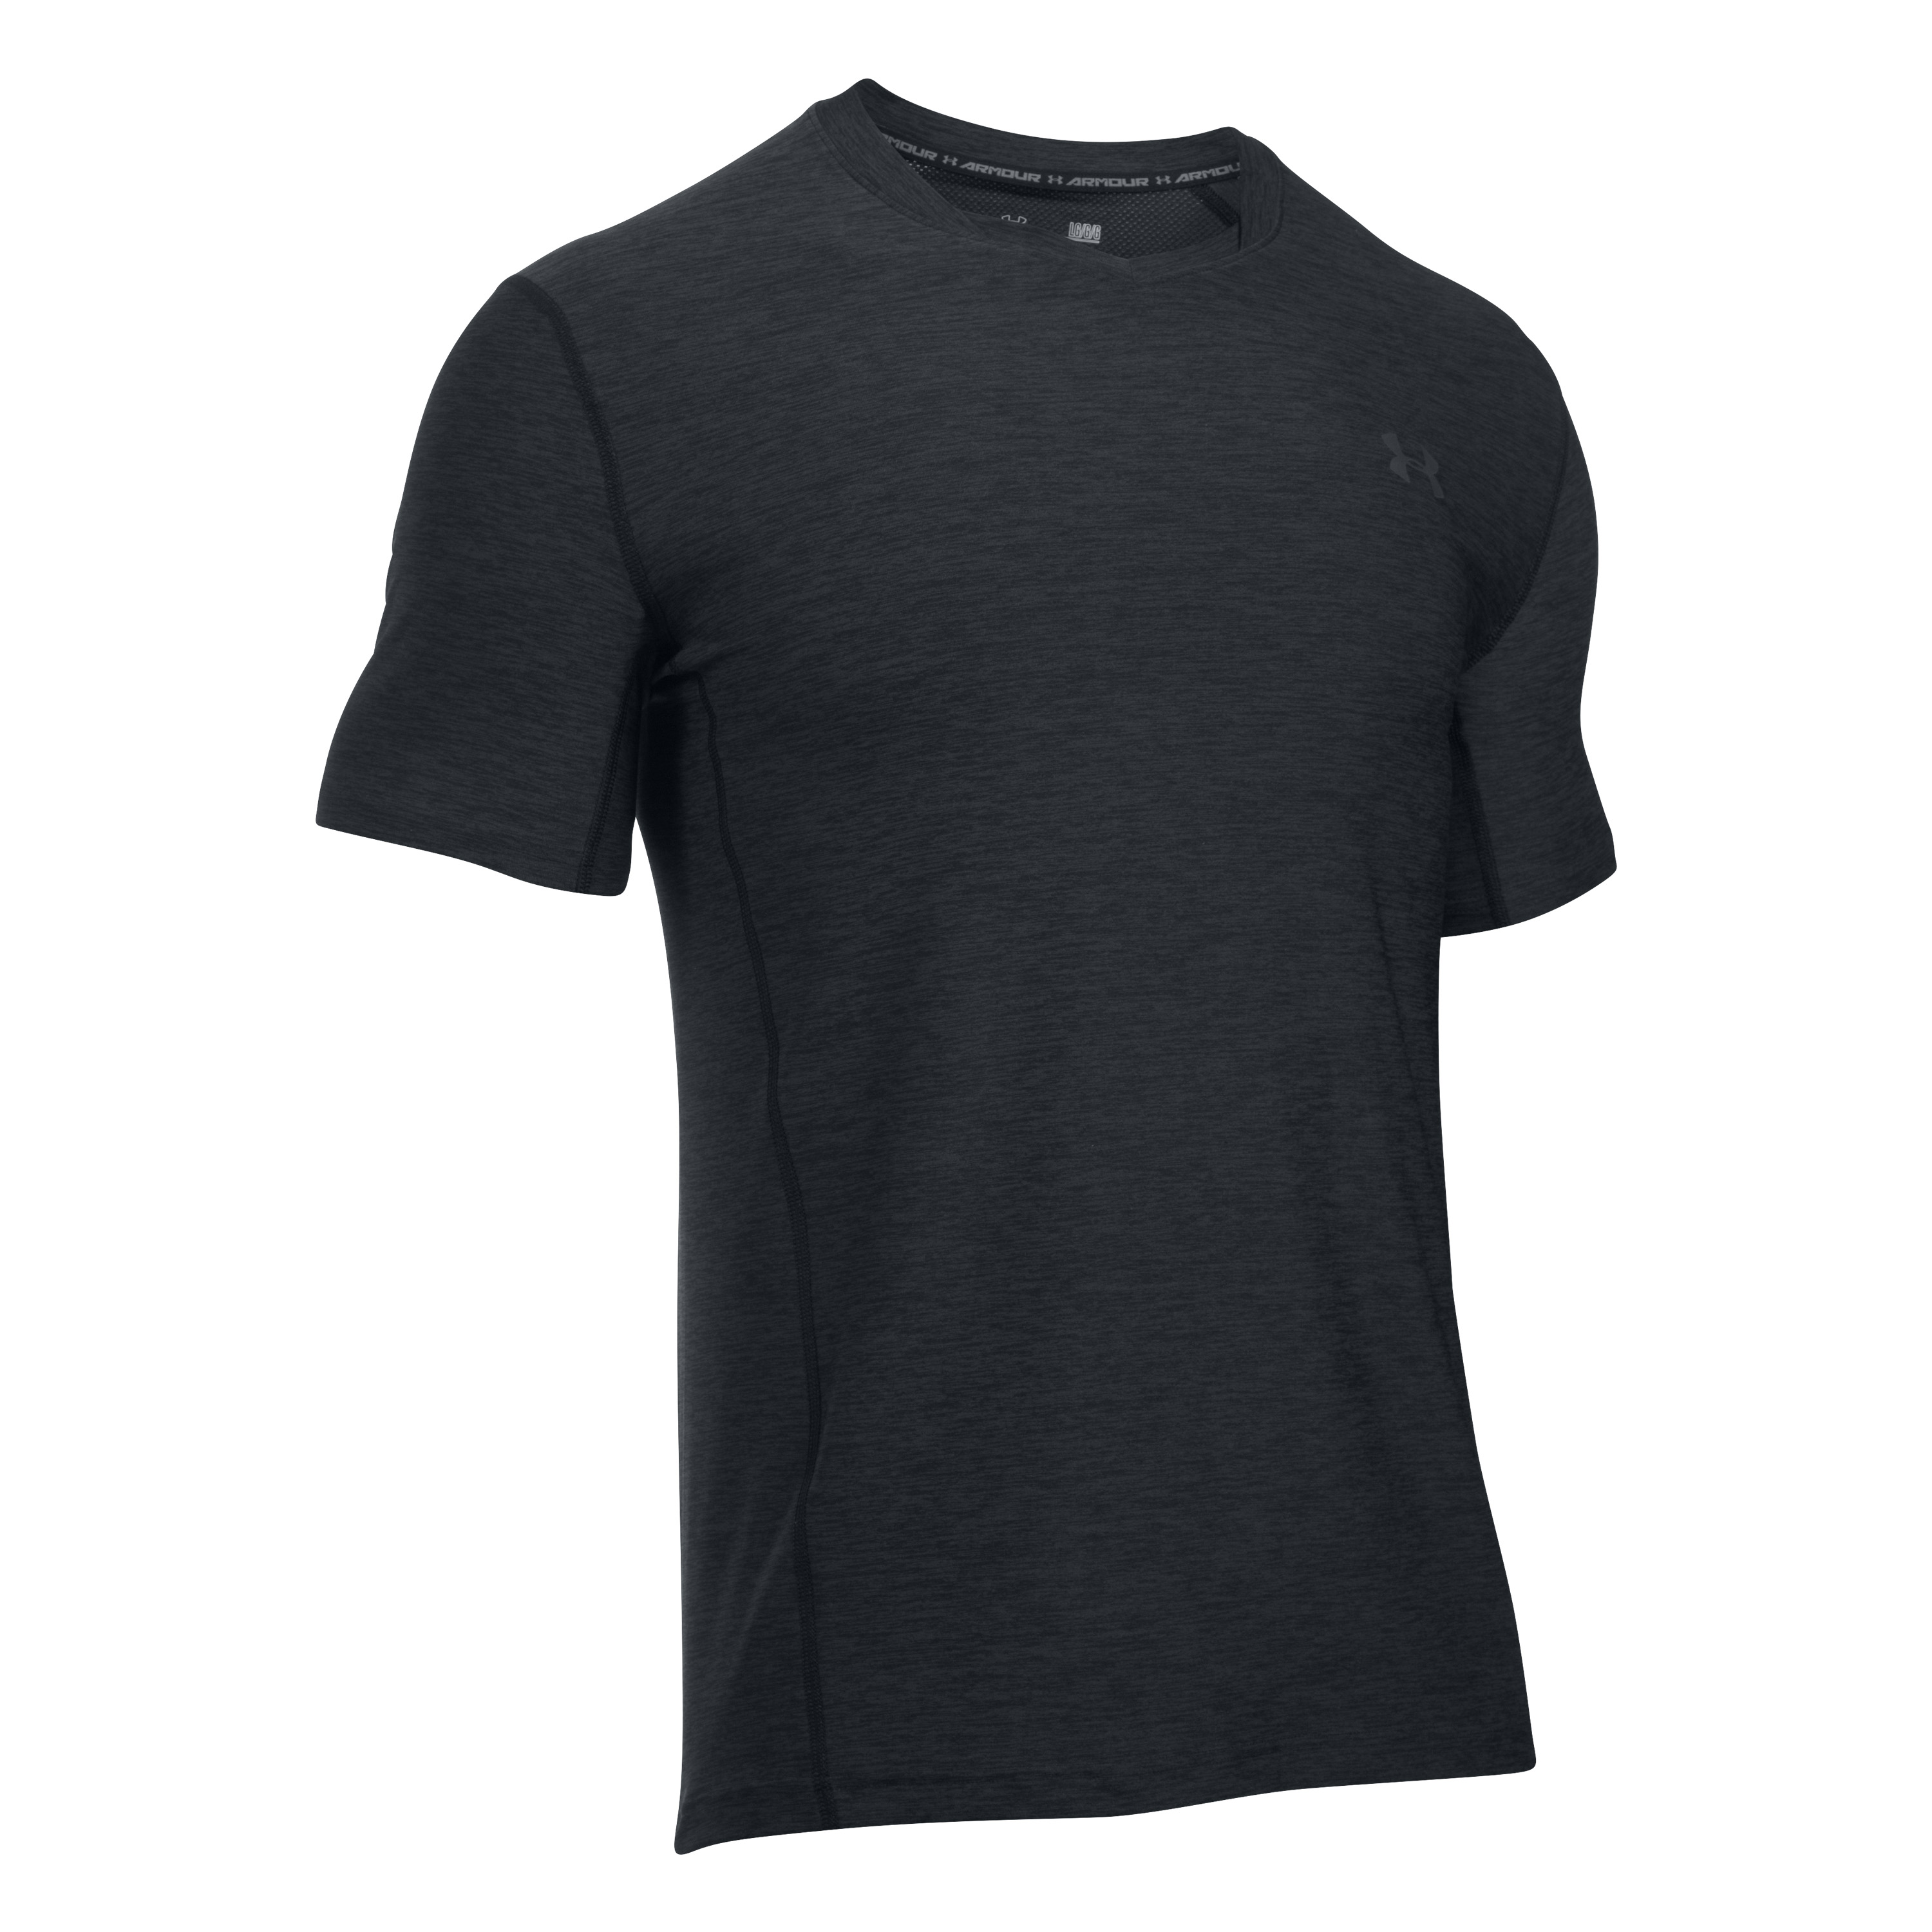 Under Armour Fitness Supervent Fitted black/gray